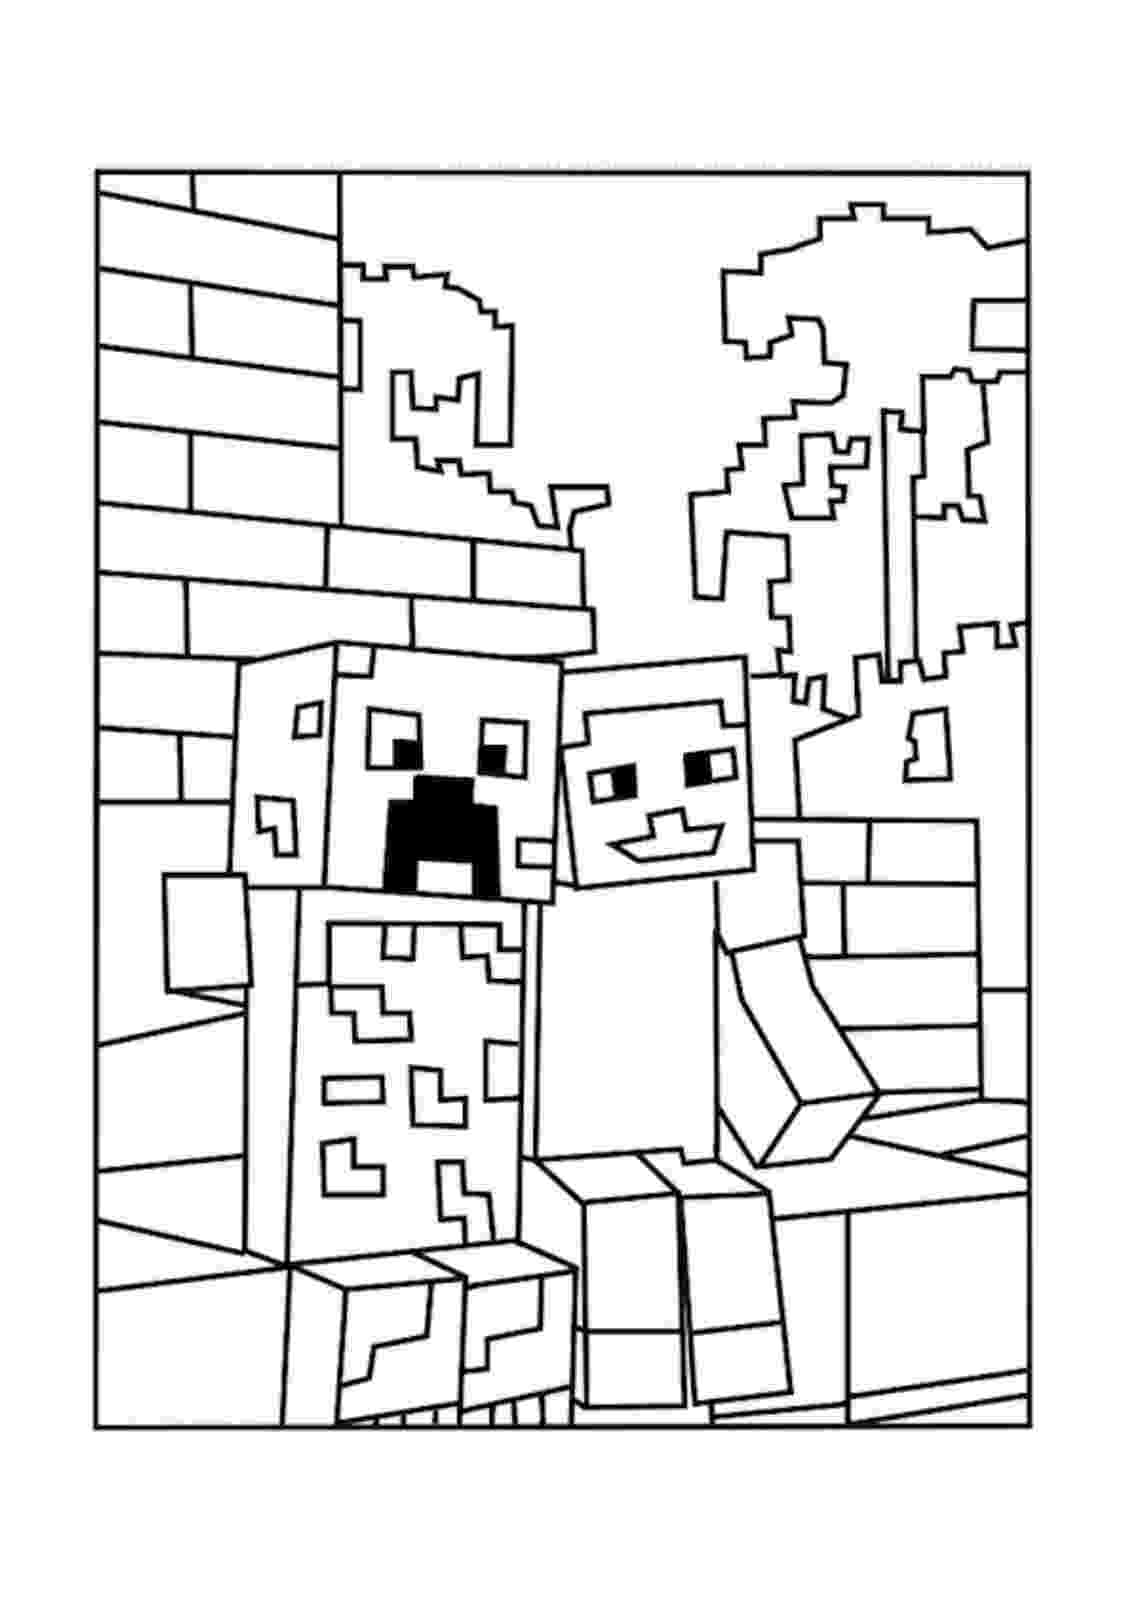 minecraft colouring pages free minecraft wolf coloring page lego coloring pages colouring minecraft free pages